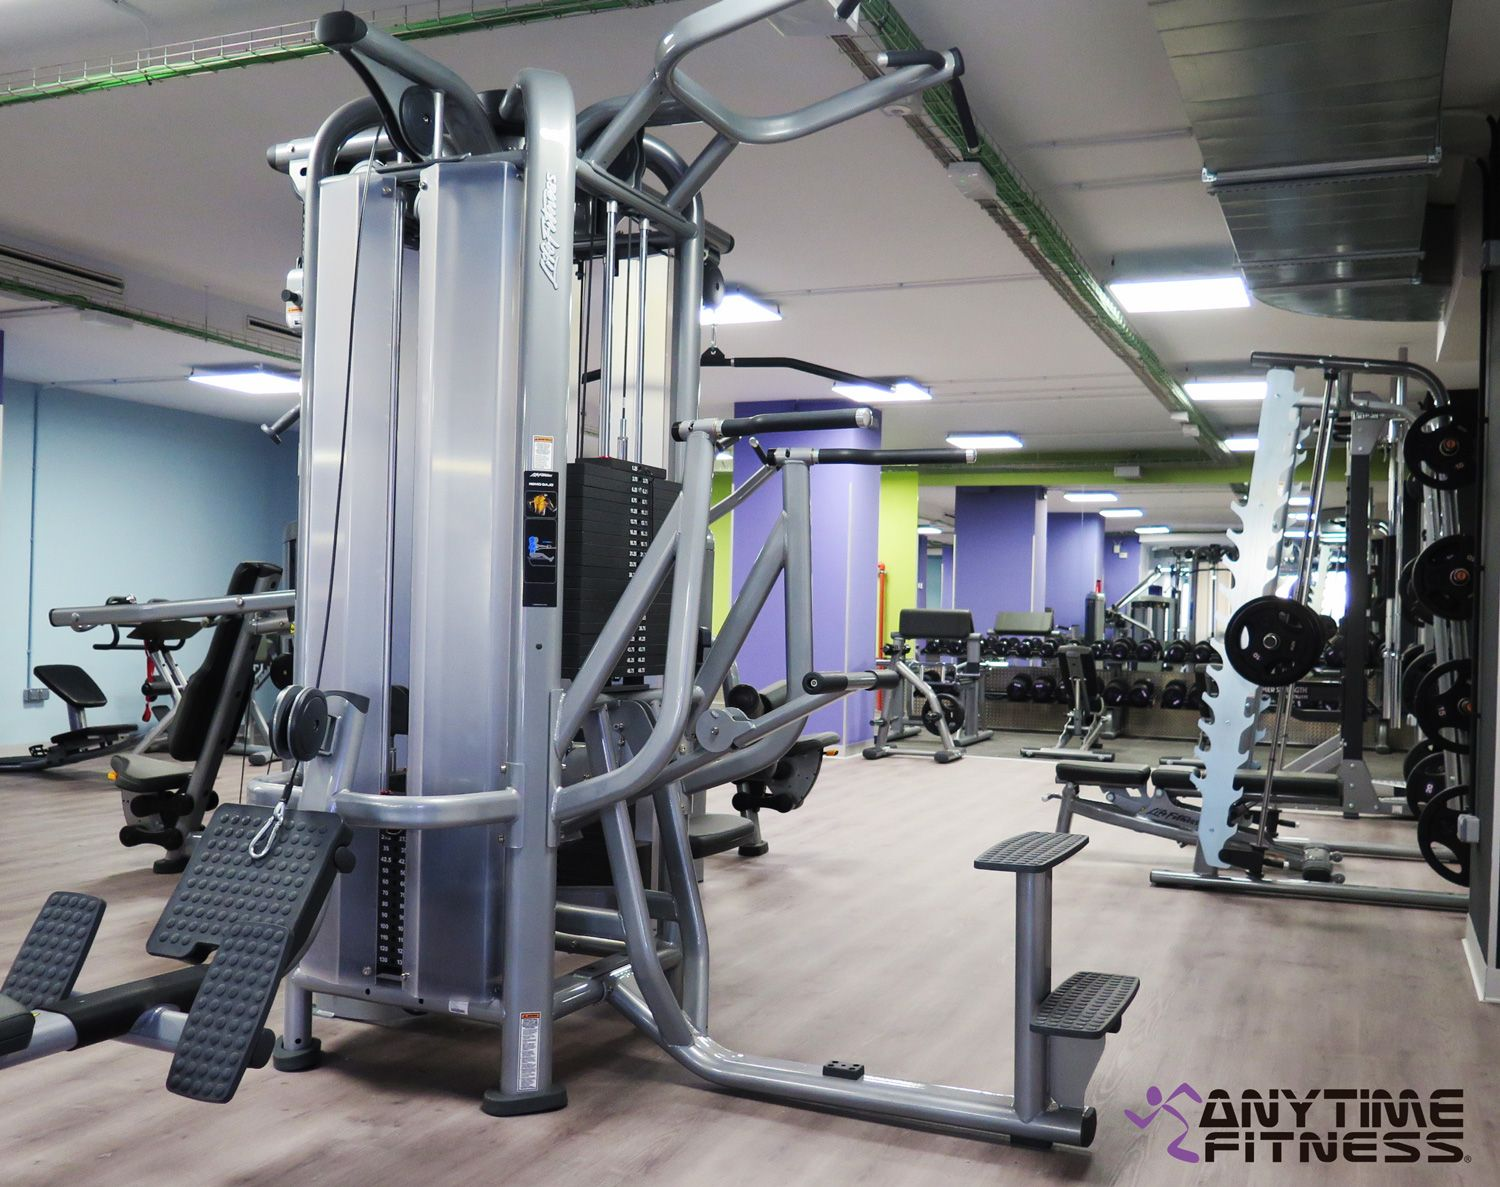 Anytime fitness inaugura su cuarto club en madrid for 24 horas gym